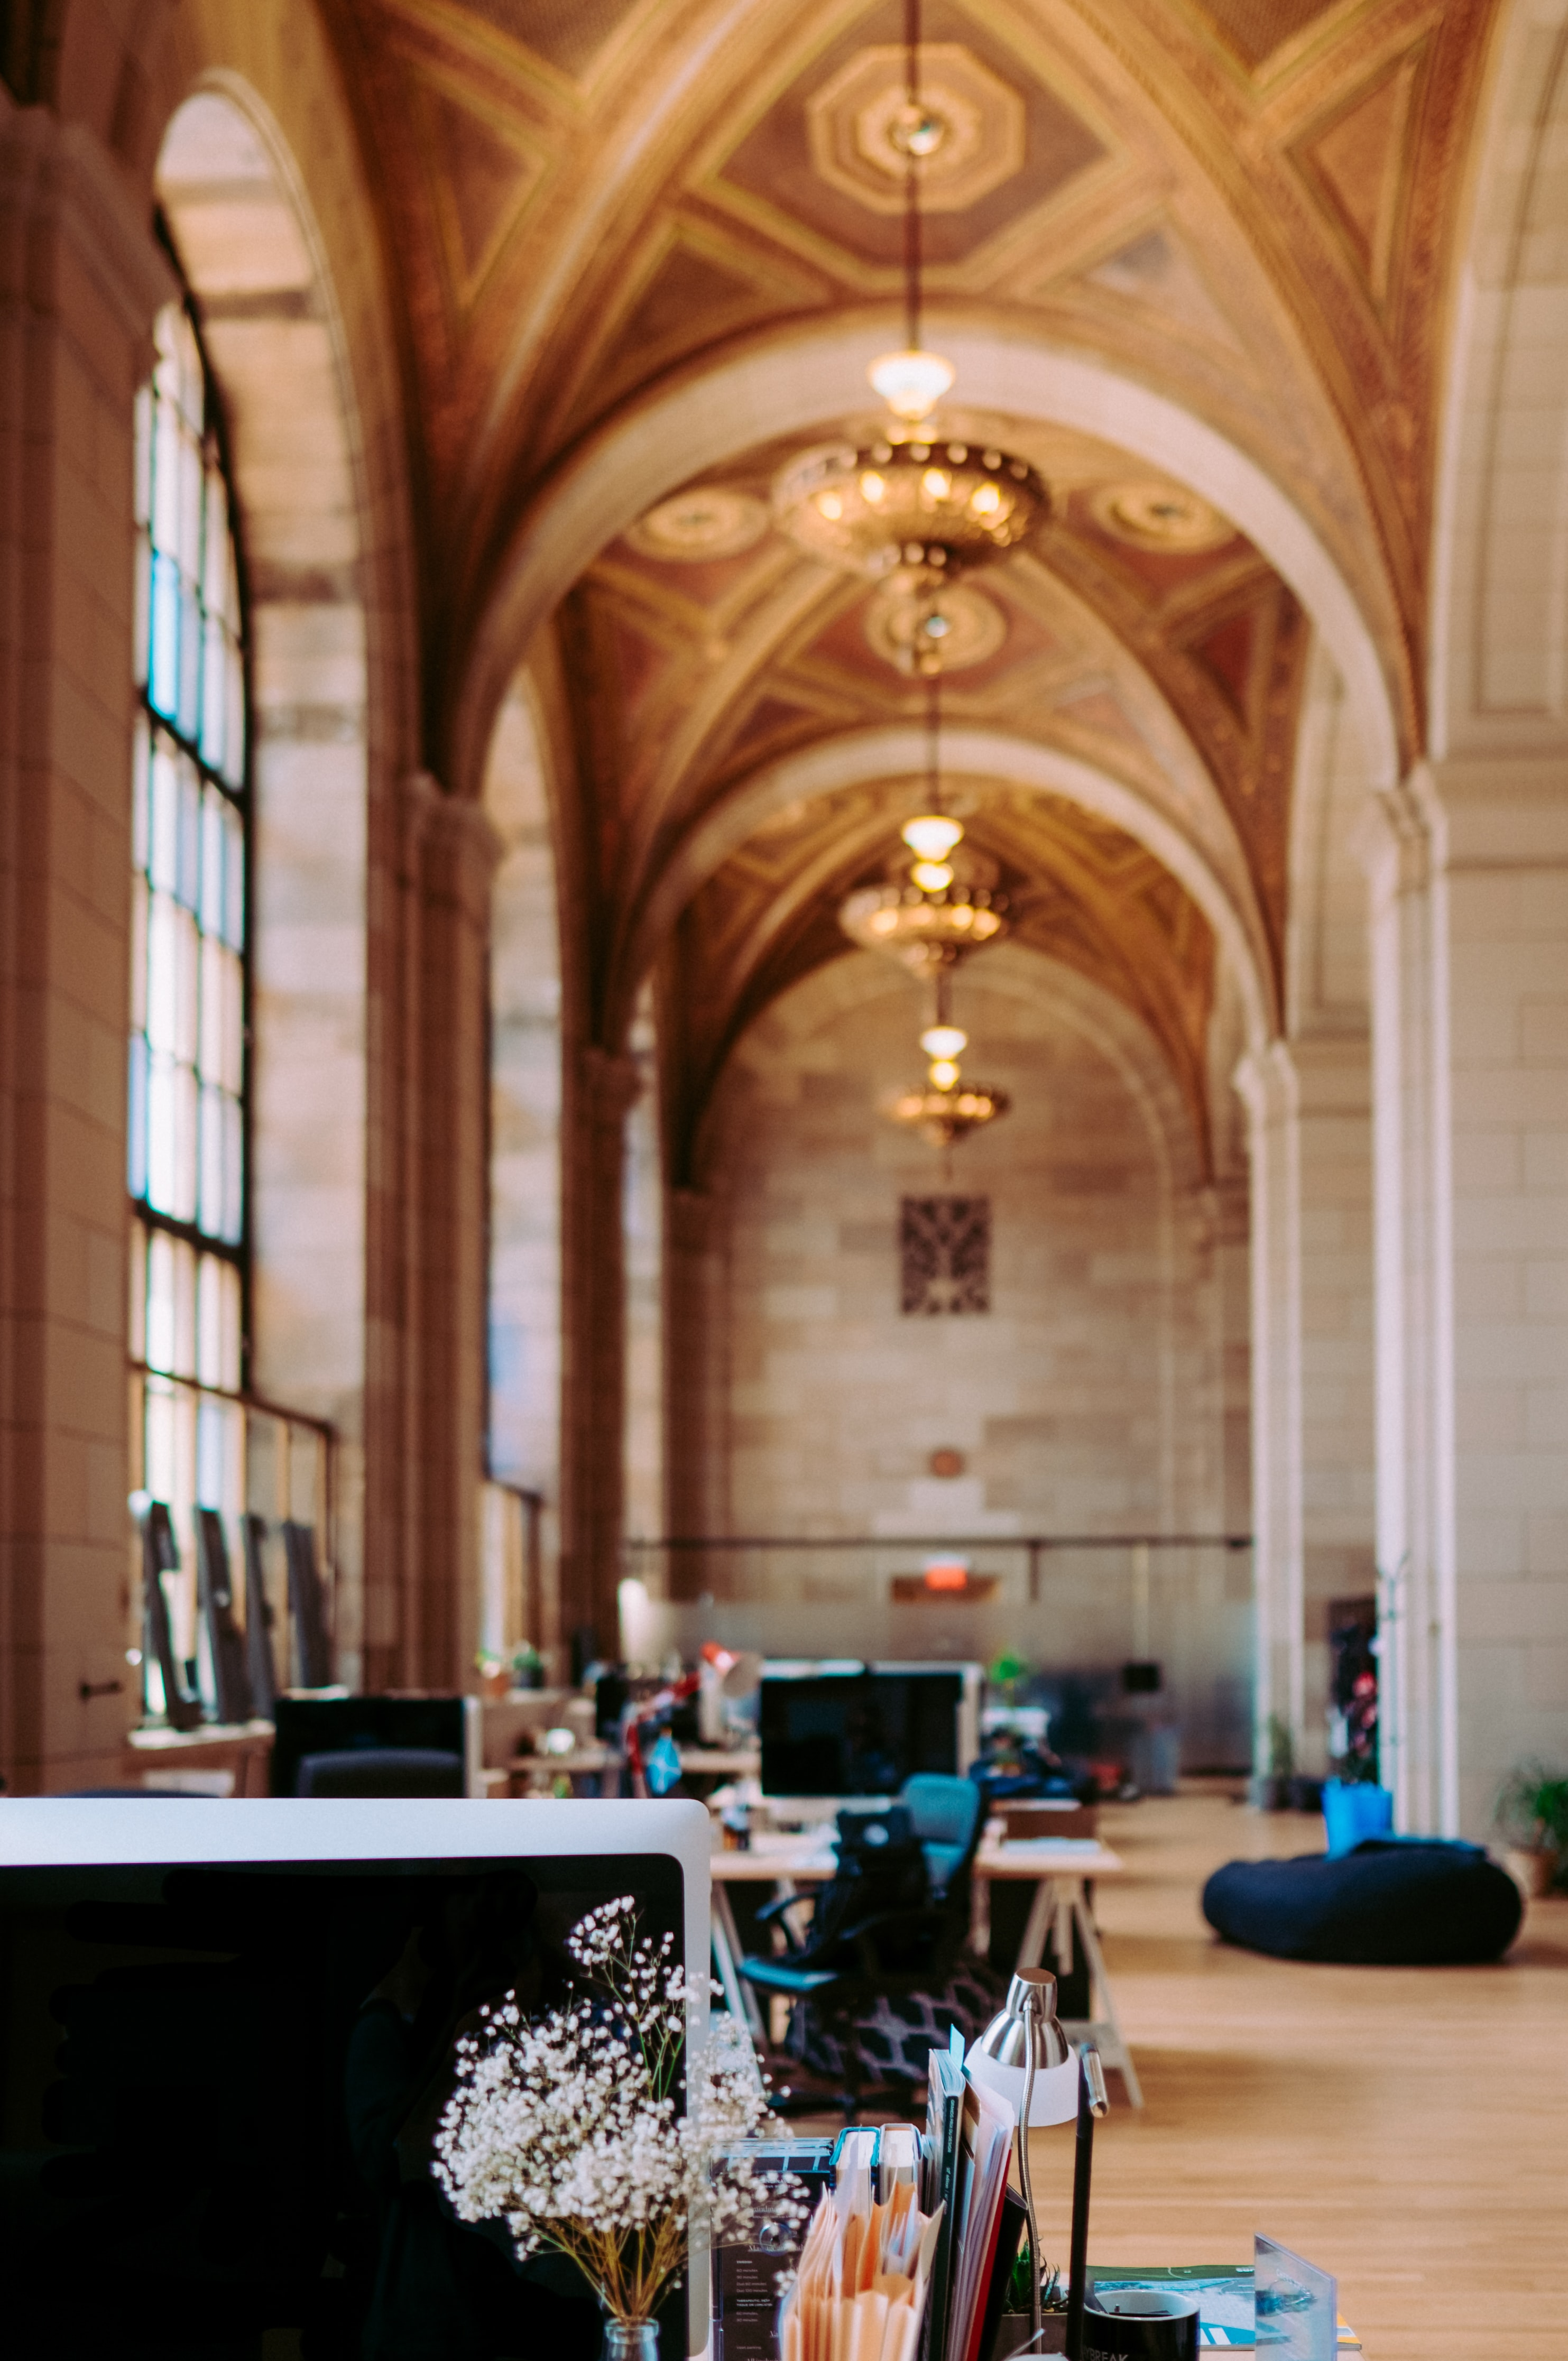 An open office space in a cathedral-style interior